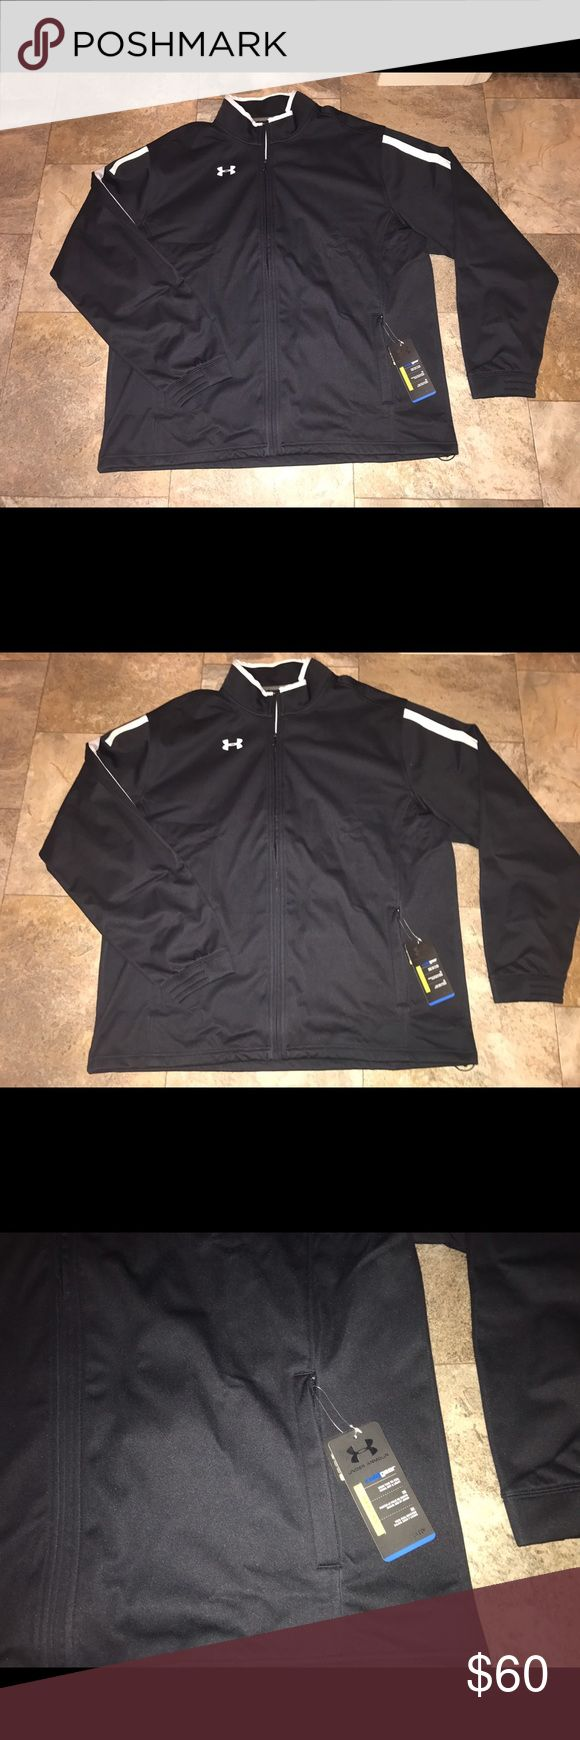 Under Armour jacket mens NWT size xlarge New with tags men's under Armour cold weather jacket tag Under Armour Jackets & Coats Performance Jackets